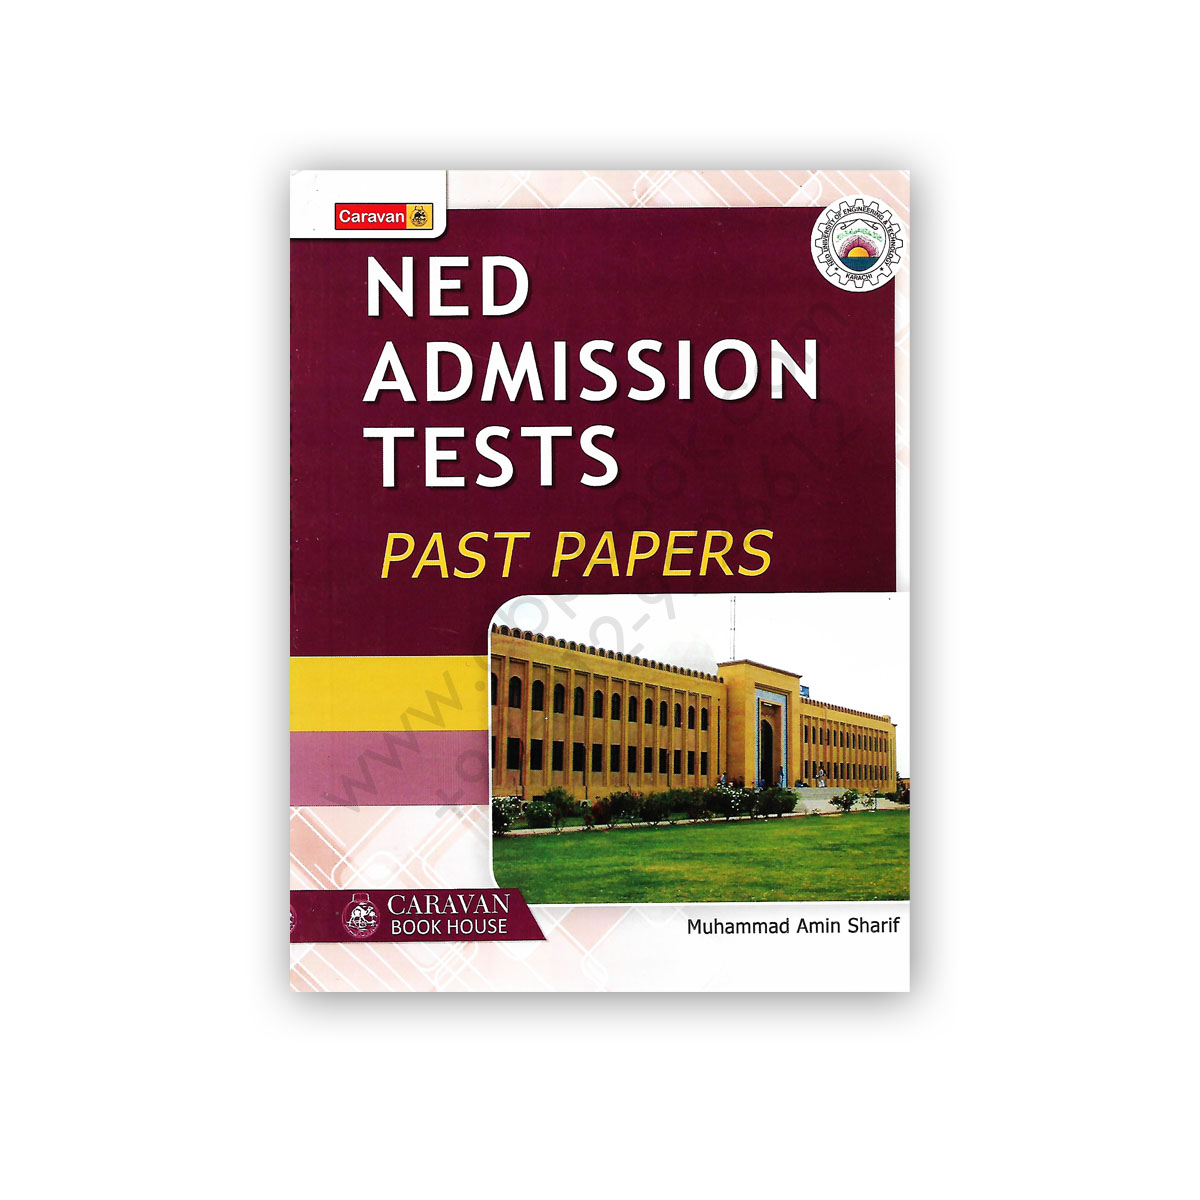 NED Admission Tests Past Papers By Muhammad Amin Sharif - CARAVAN